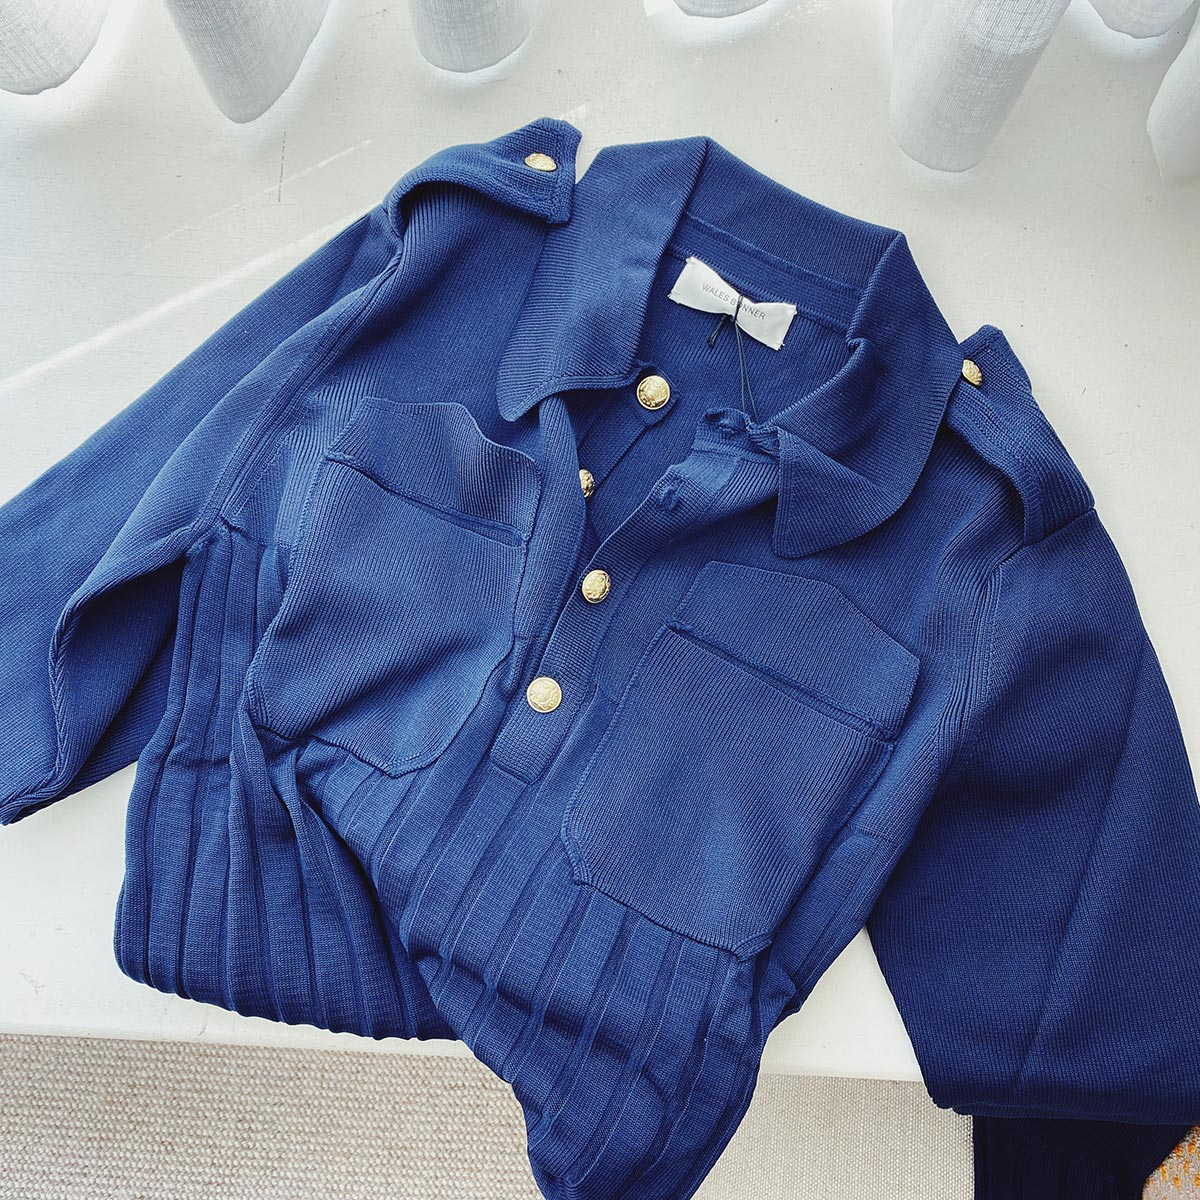 Wales Bonner navy blue sweater on sale at LCD.